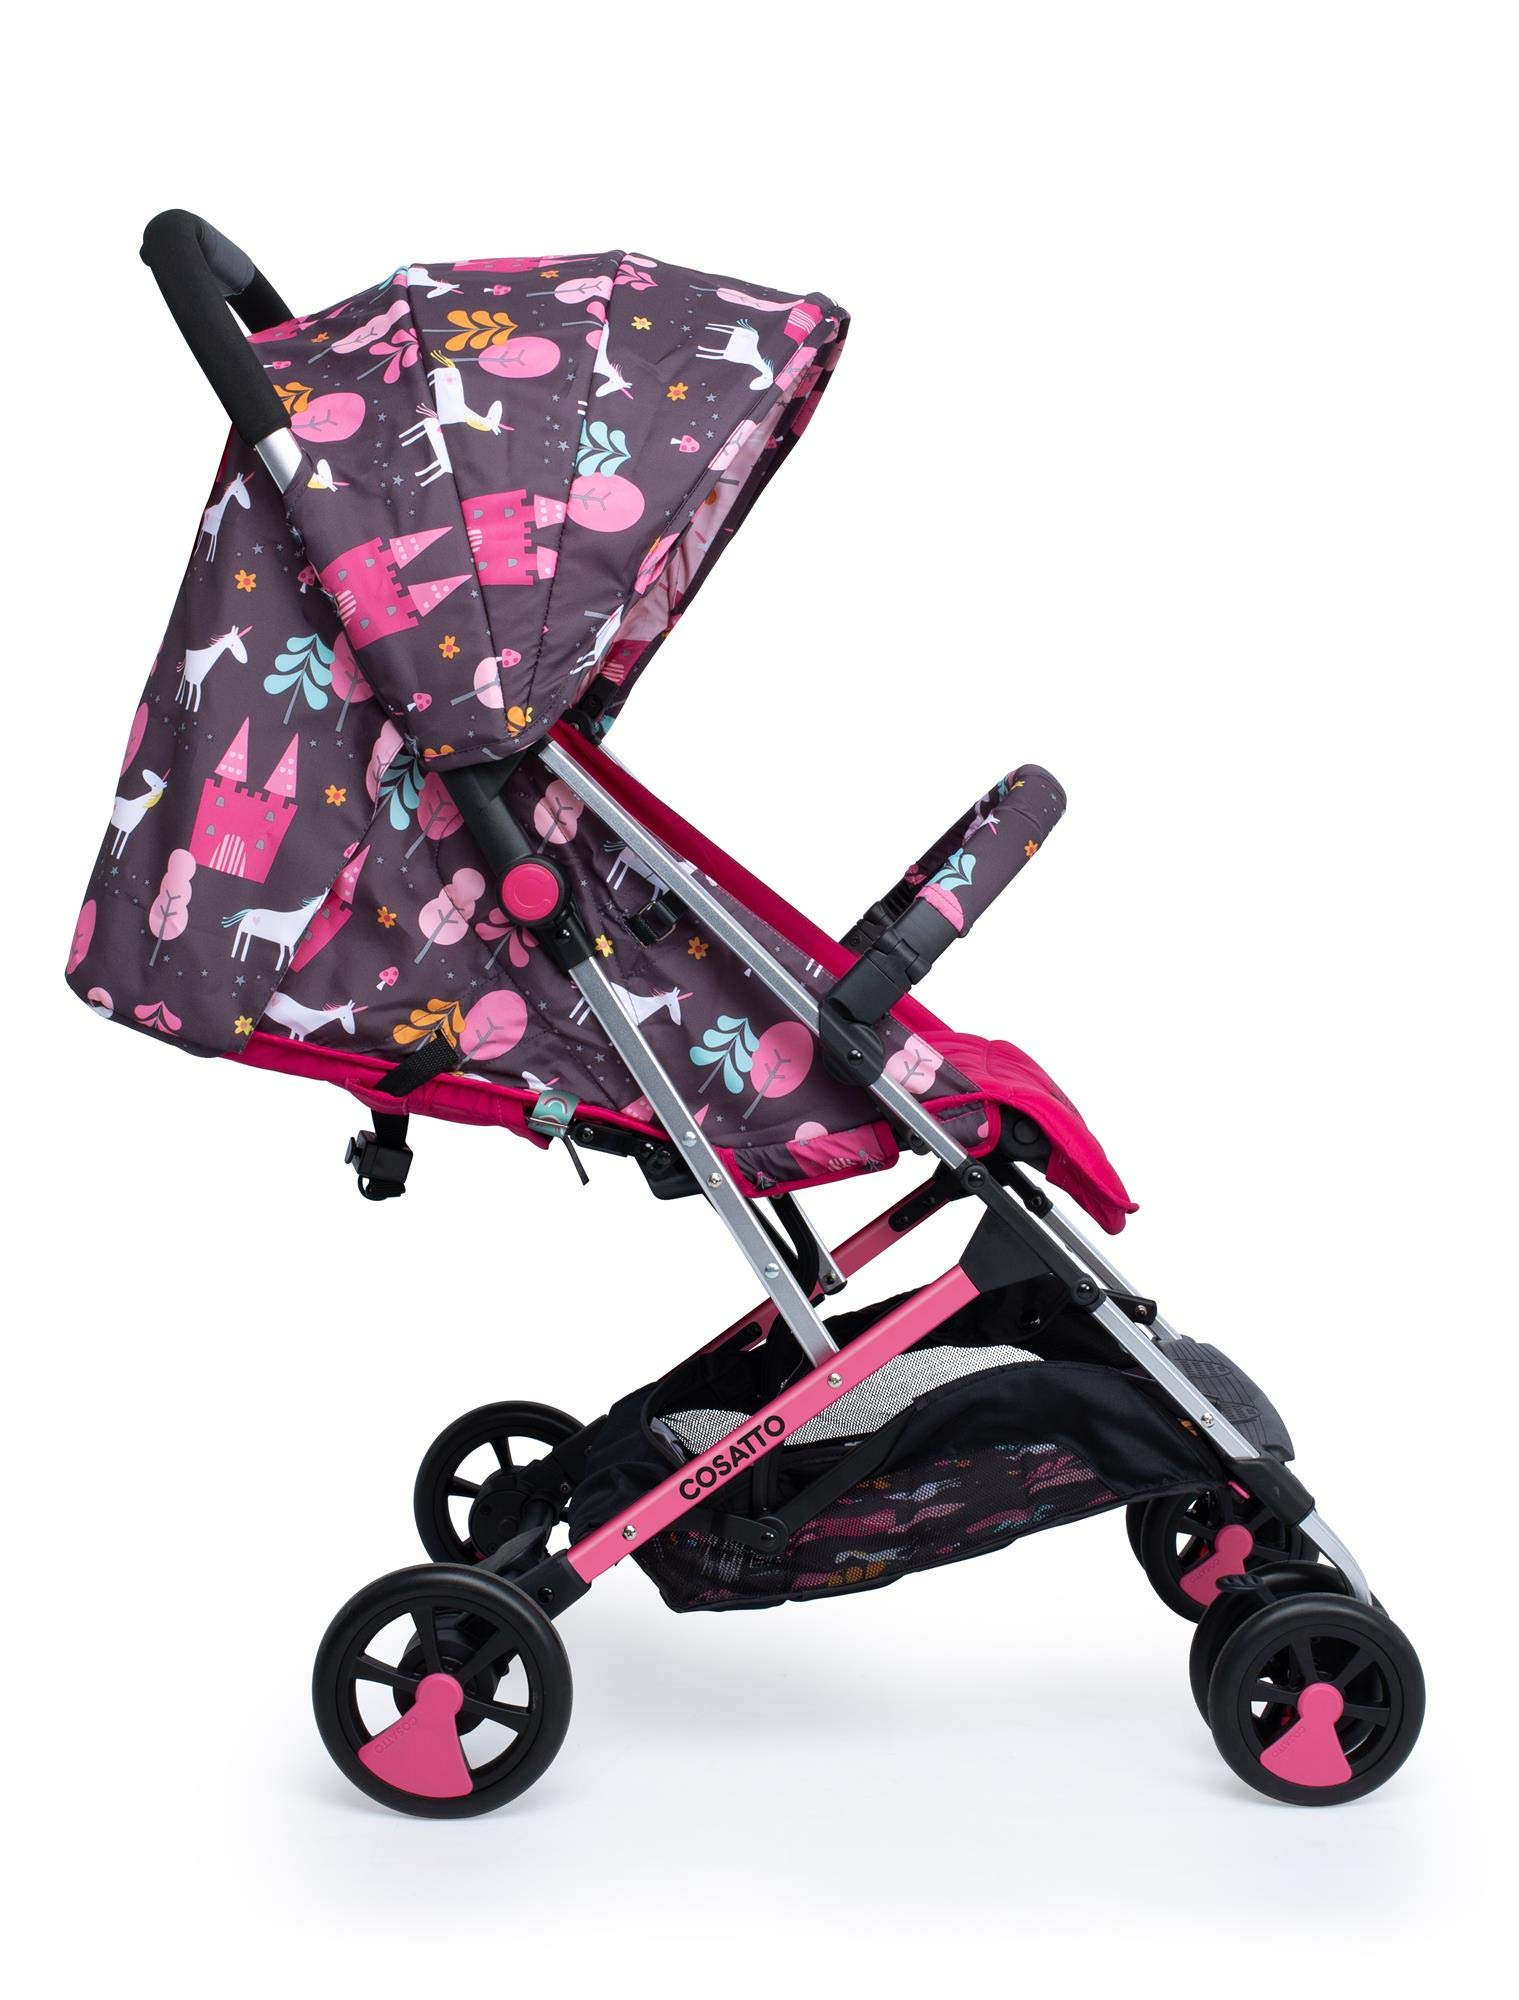 Cosatto CT4224 Woosh 2 Unicorn Land 7.2 kg Cosatto Suitable from birth to max weight of 25kg, lets your toddler use it for even longer Lightweight, sturdy aluminium frame New-born recline 2